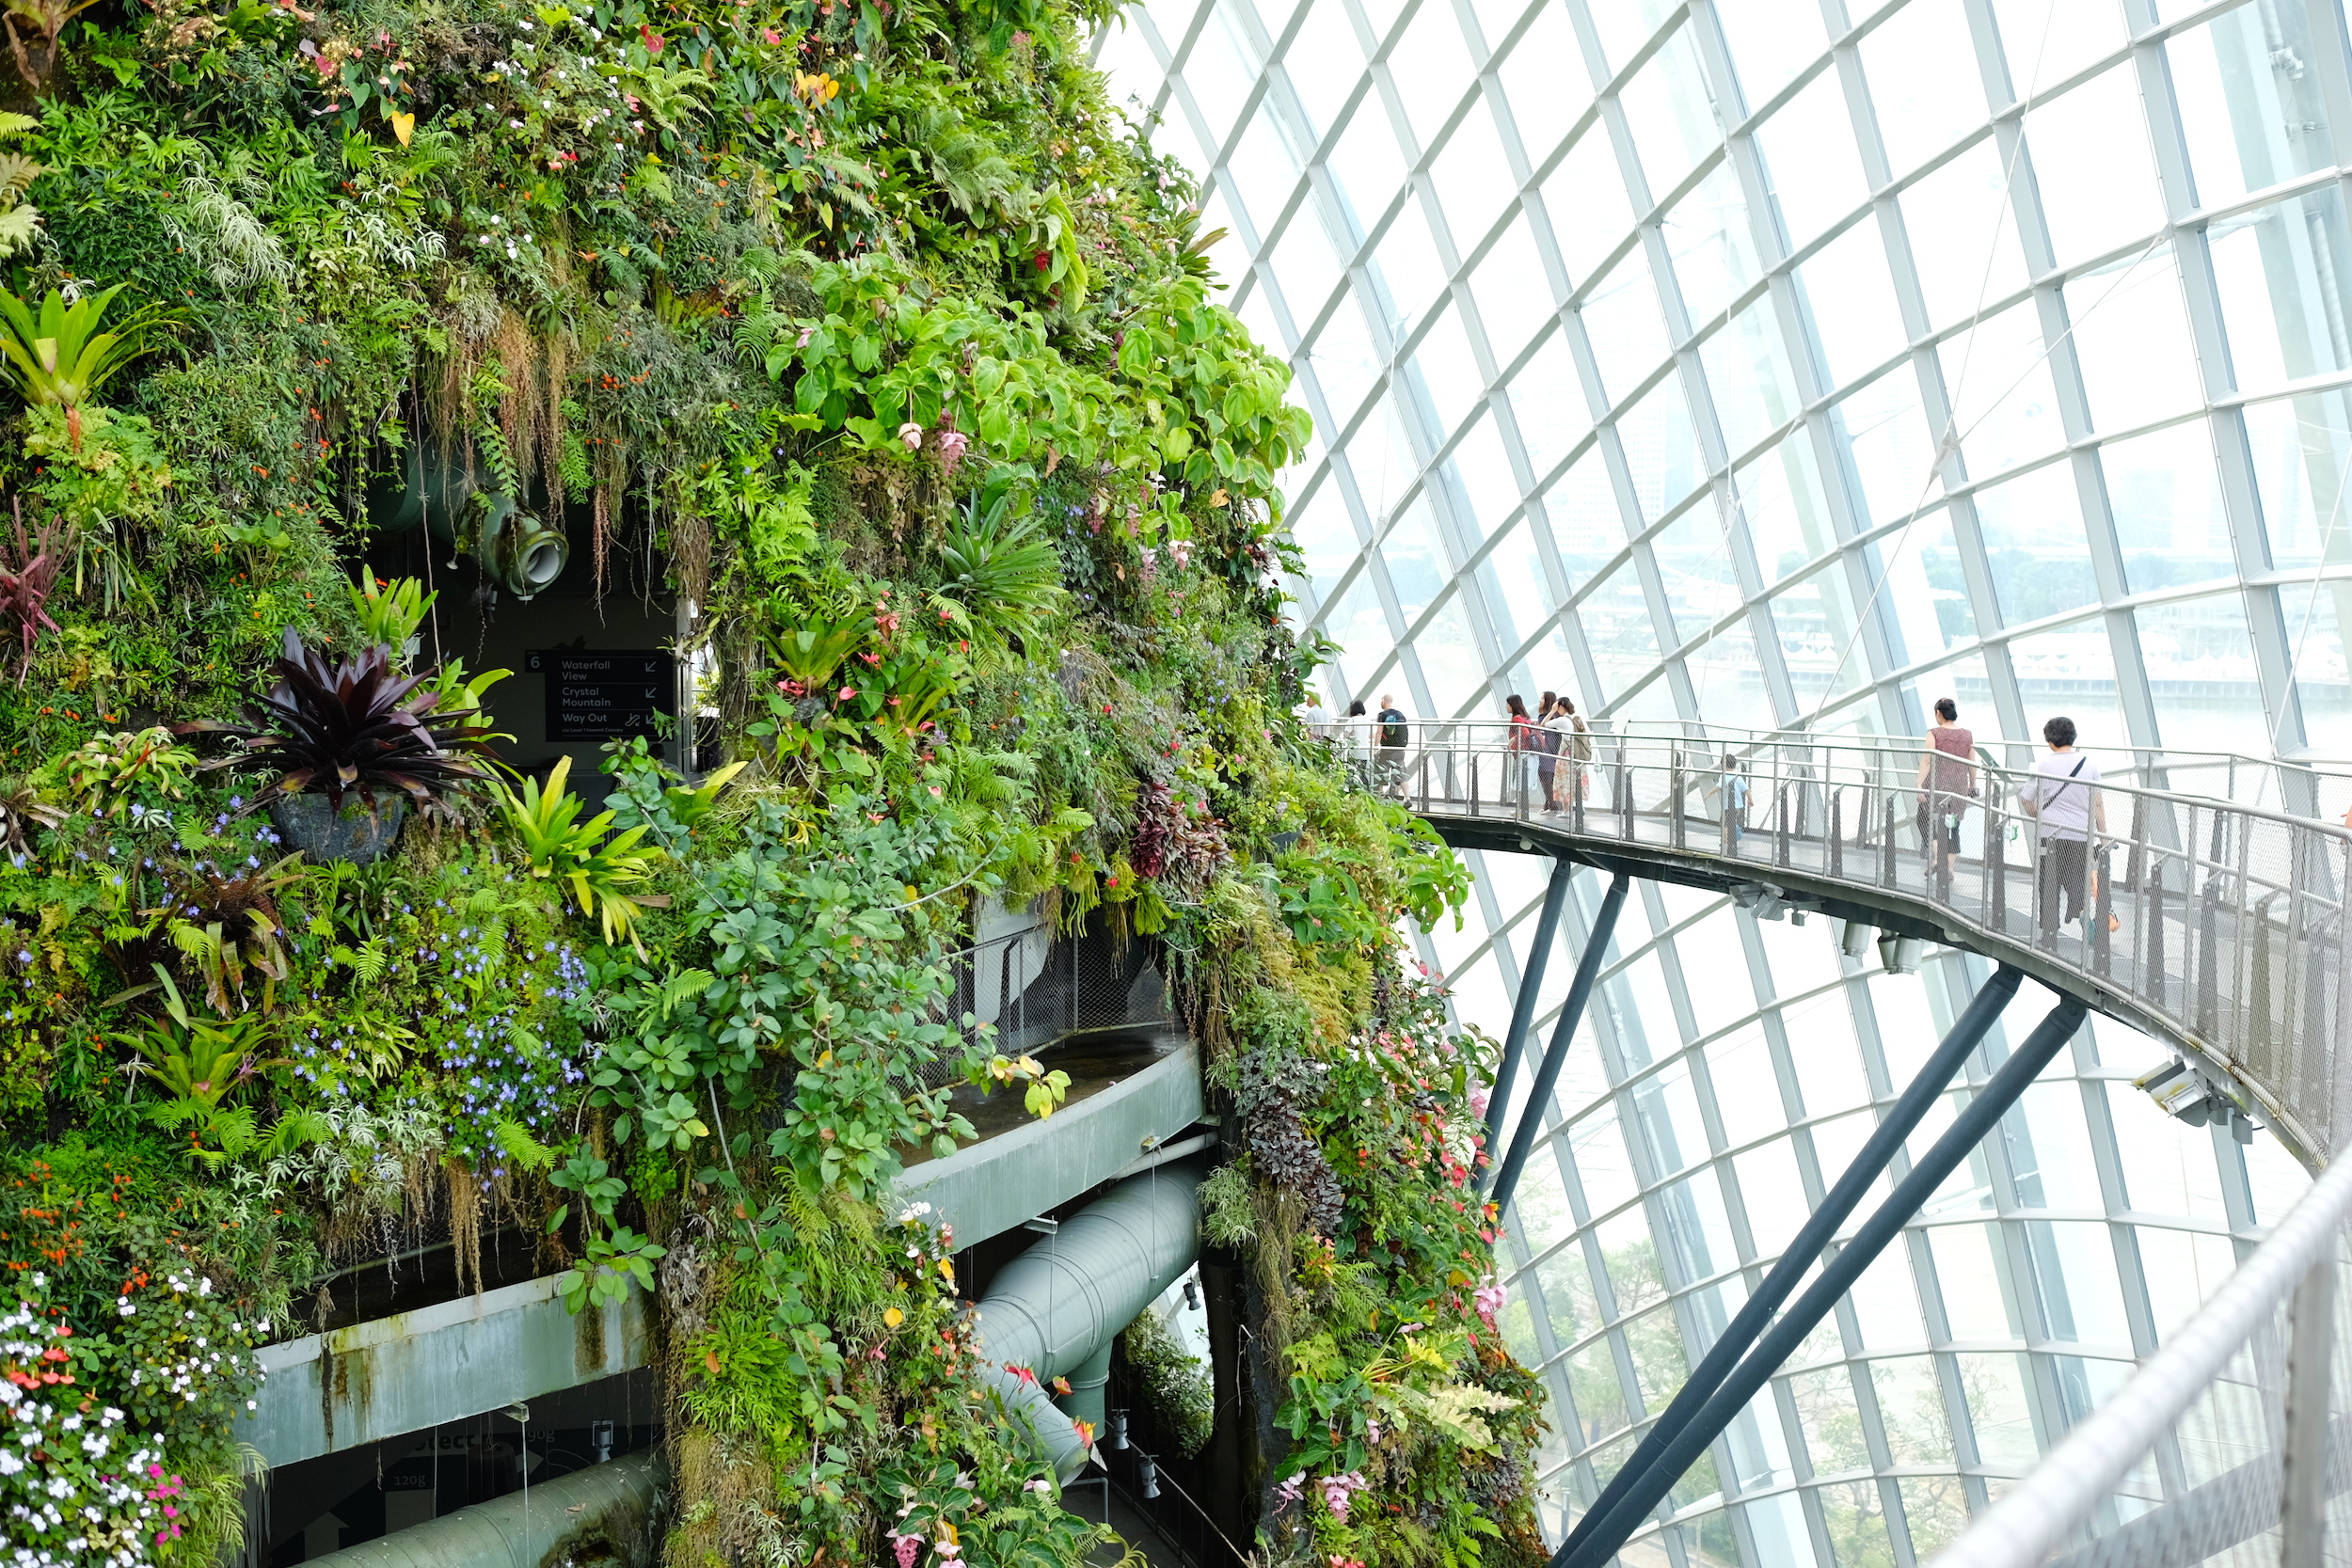 A tall, 35-metre garden is filled with tropical plants and a metal walkway skirts round the edge.